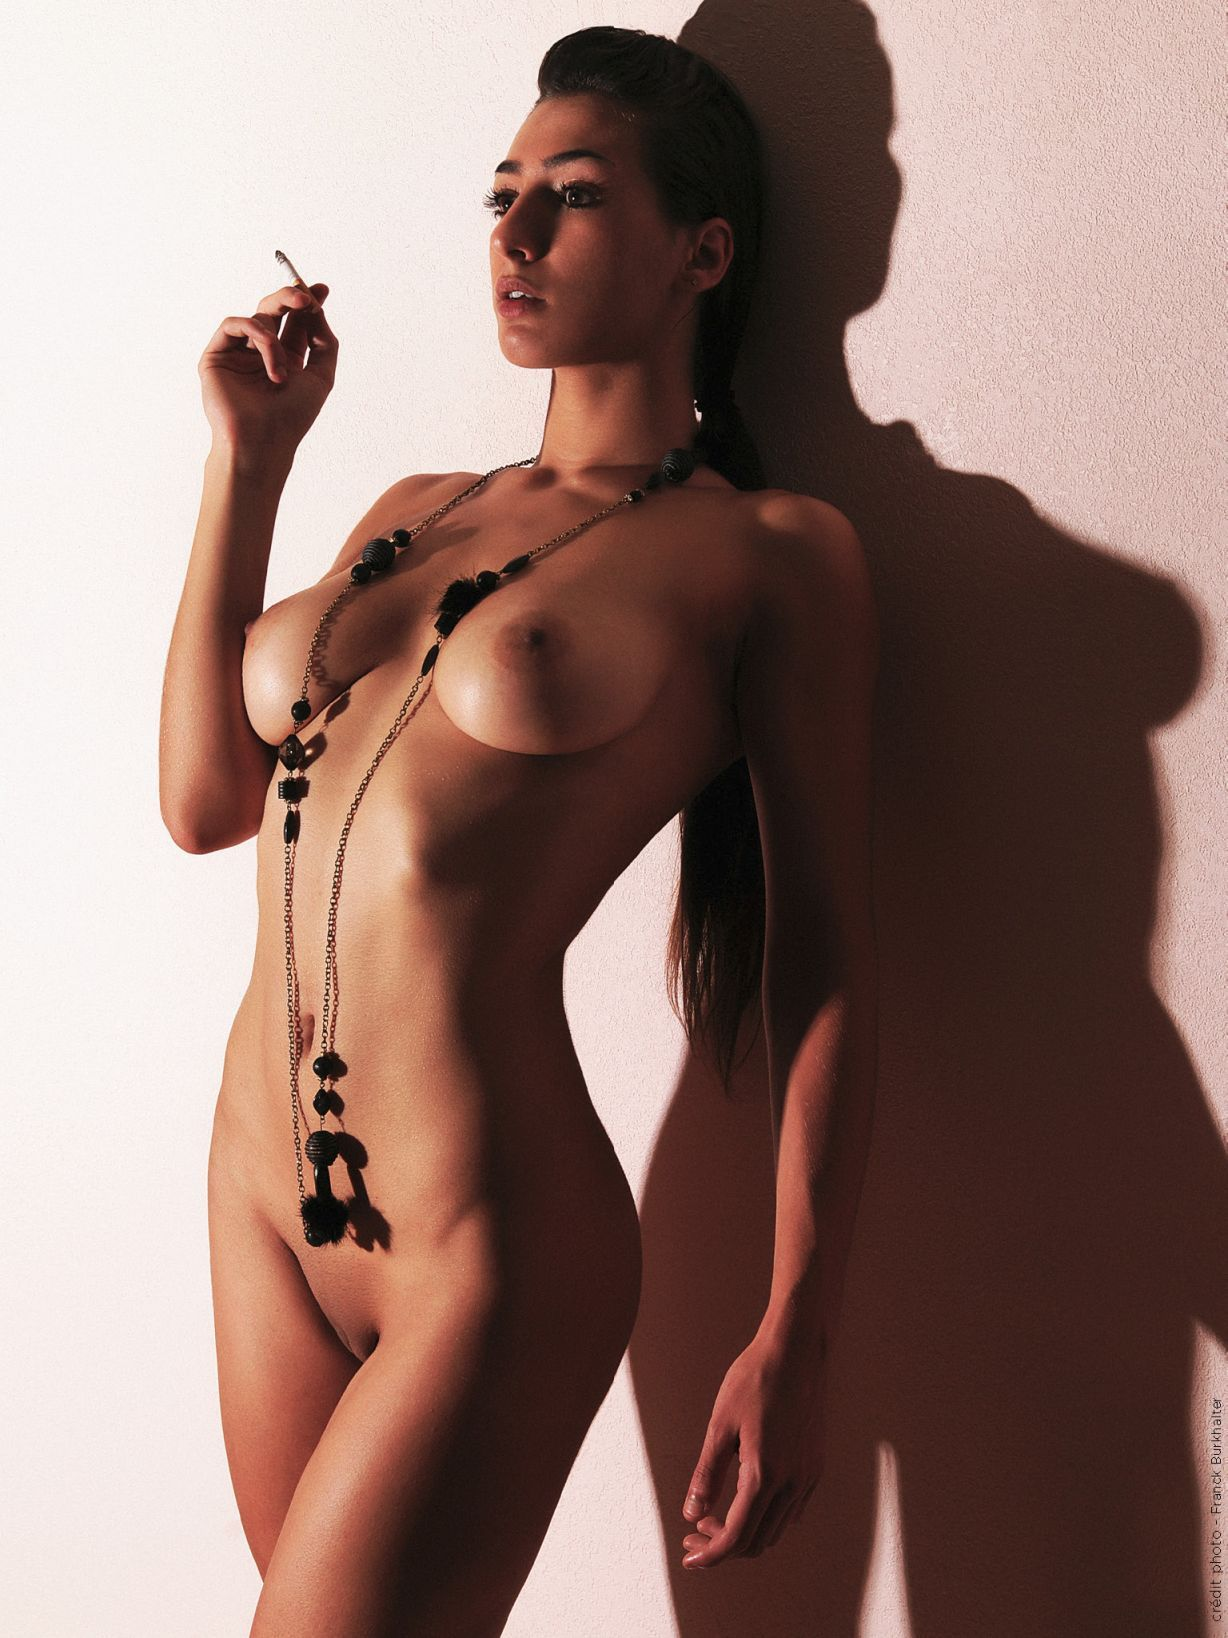 photo de jennifer clark nue